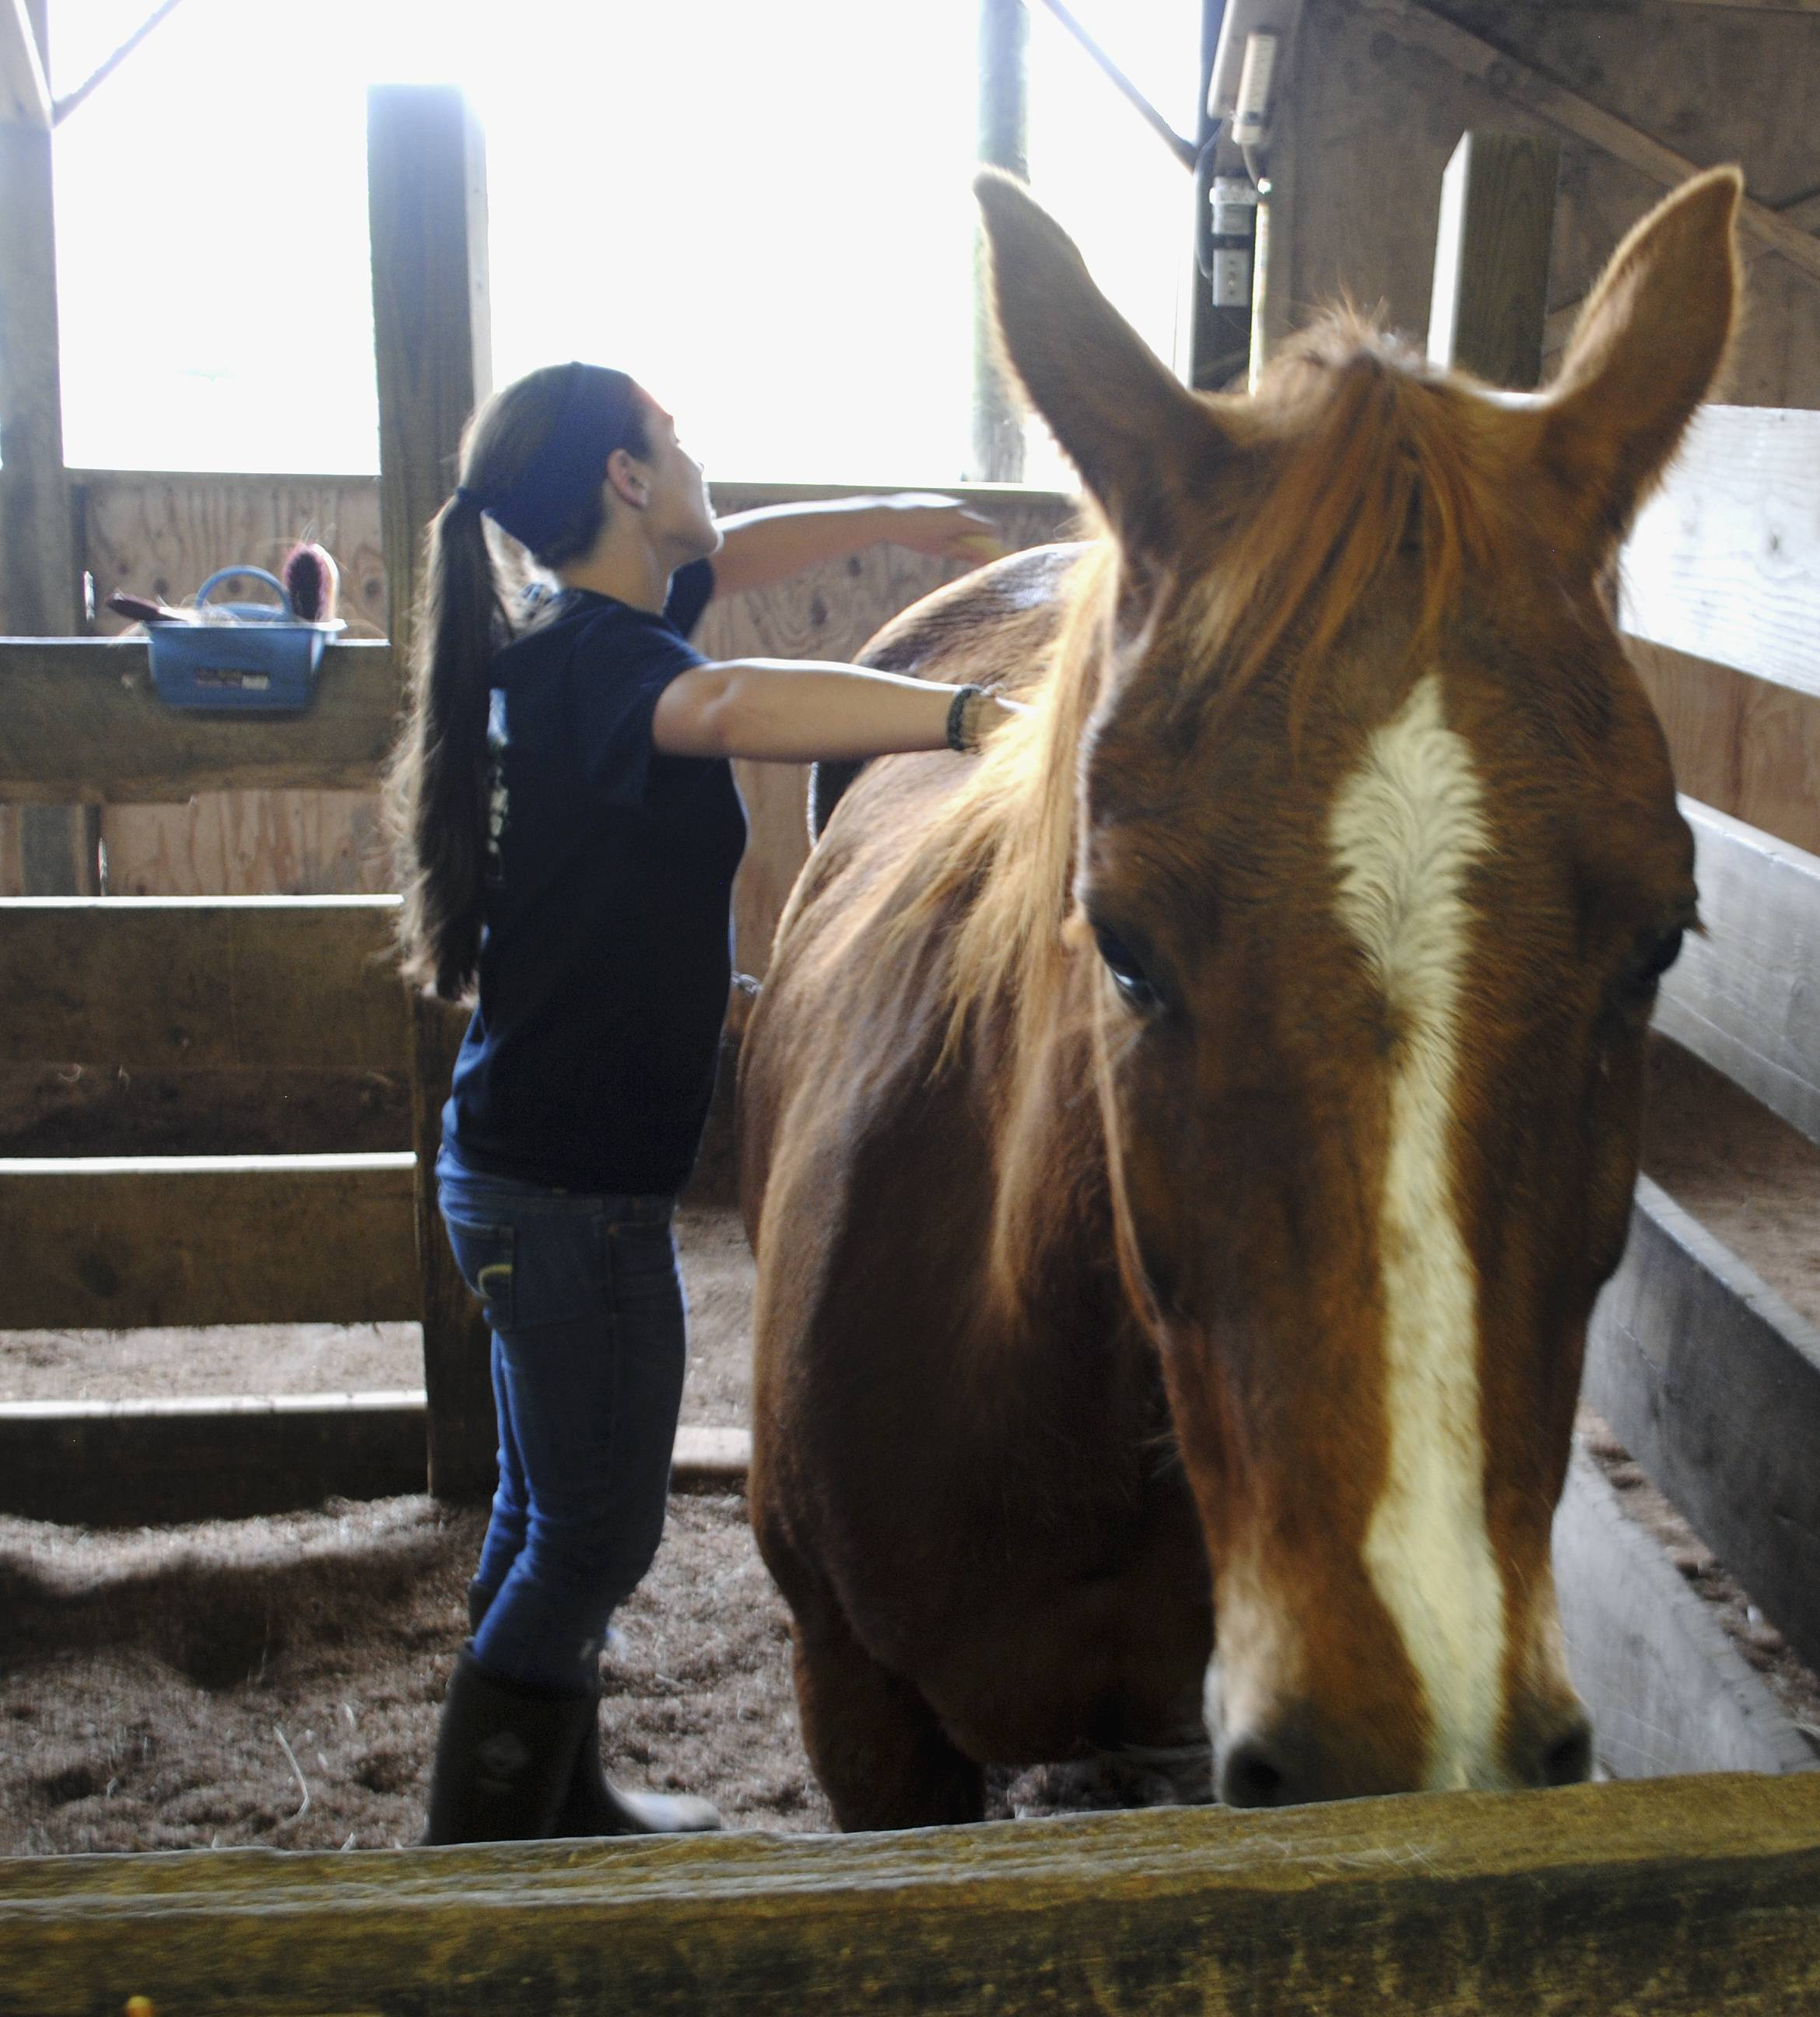 Peggy Nott, an equine sciences student at Southern Illinois University interning at Giant City Stables in Makanda, brushes Tootsie. The stables provide specialized equine services and therapeutic riding for the physically disabled.